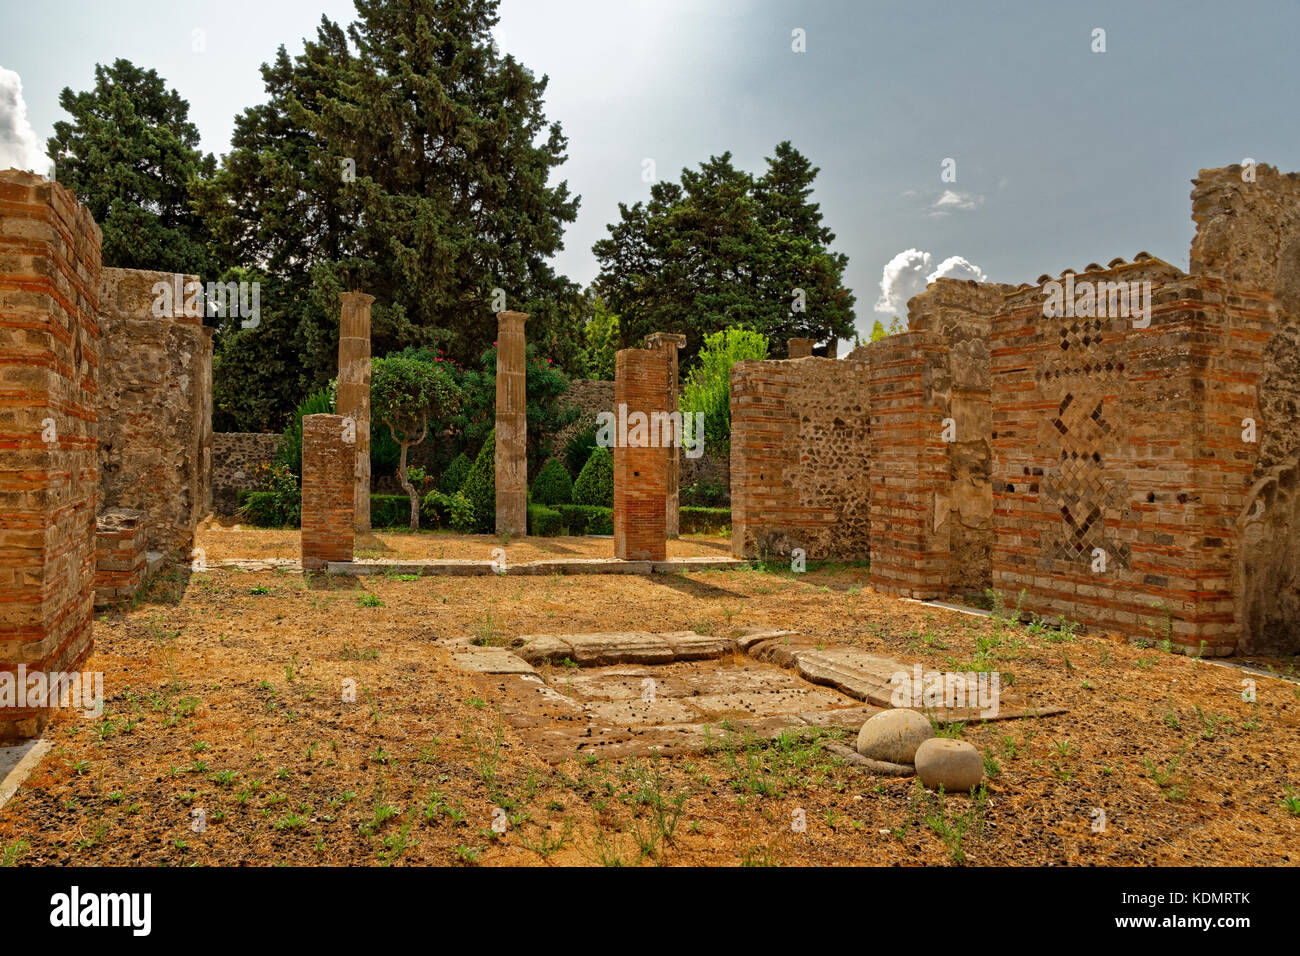 Villa courtyard in the ruined Roman city of Pompeii at Pompei Scavi, near Naples, Southern Italy. - Stock Image